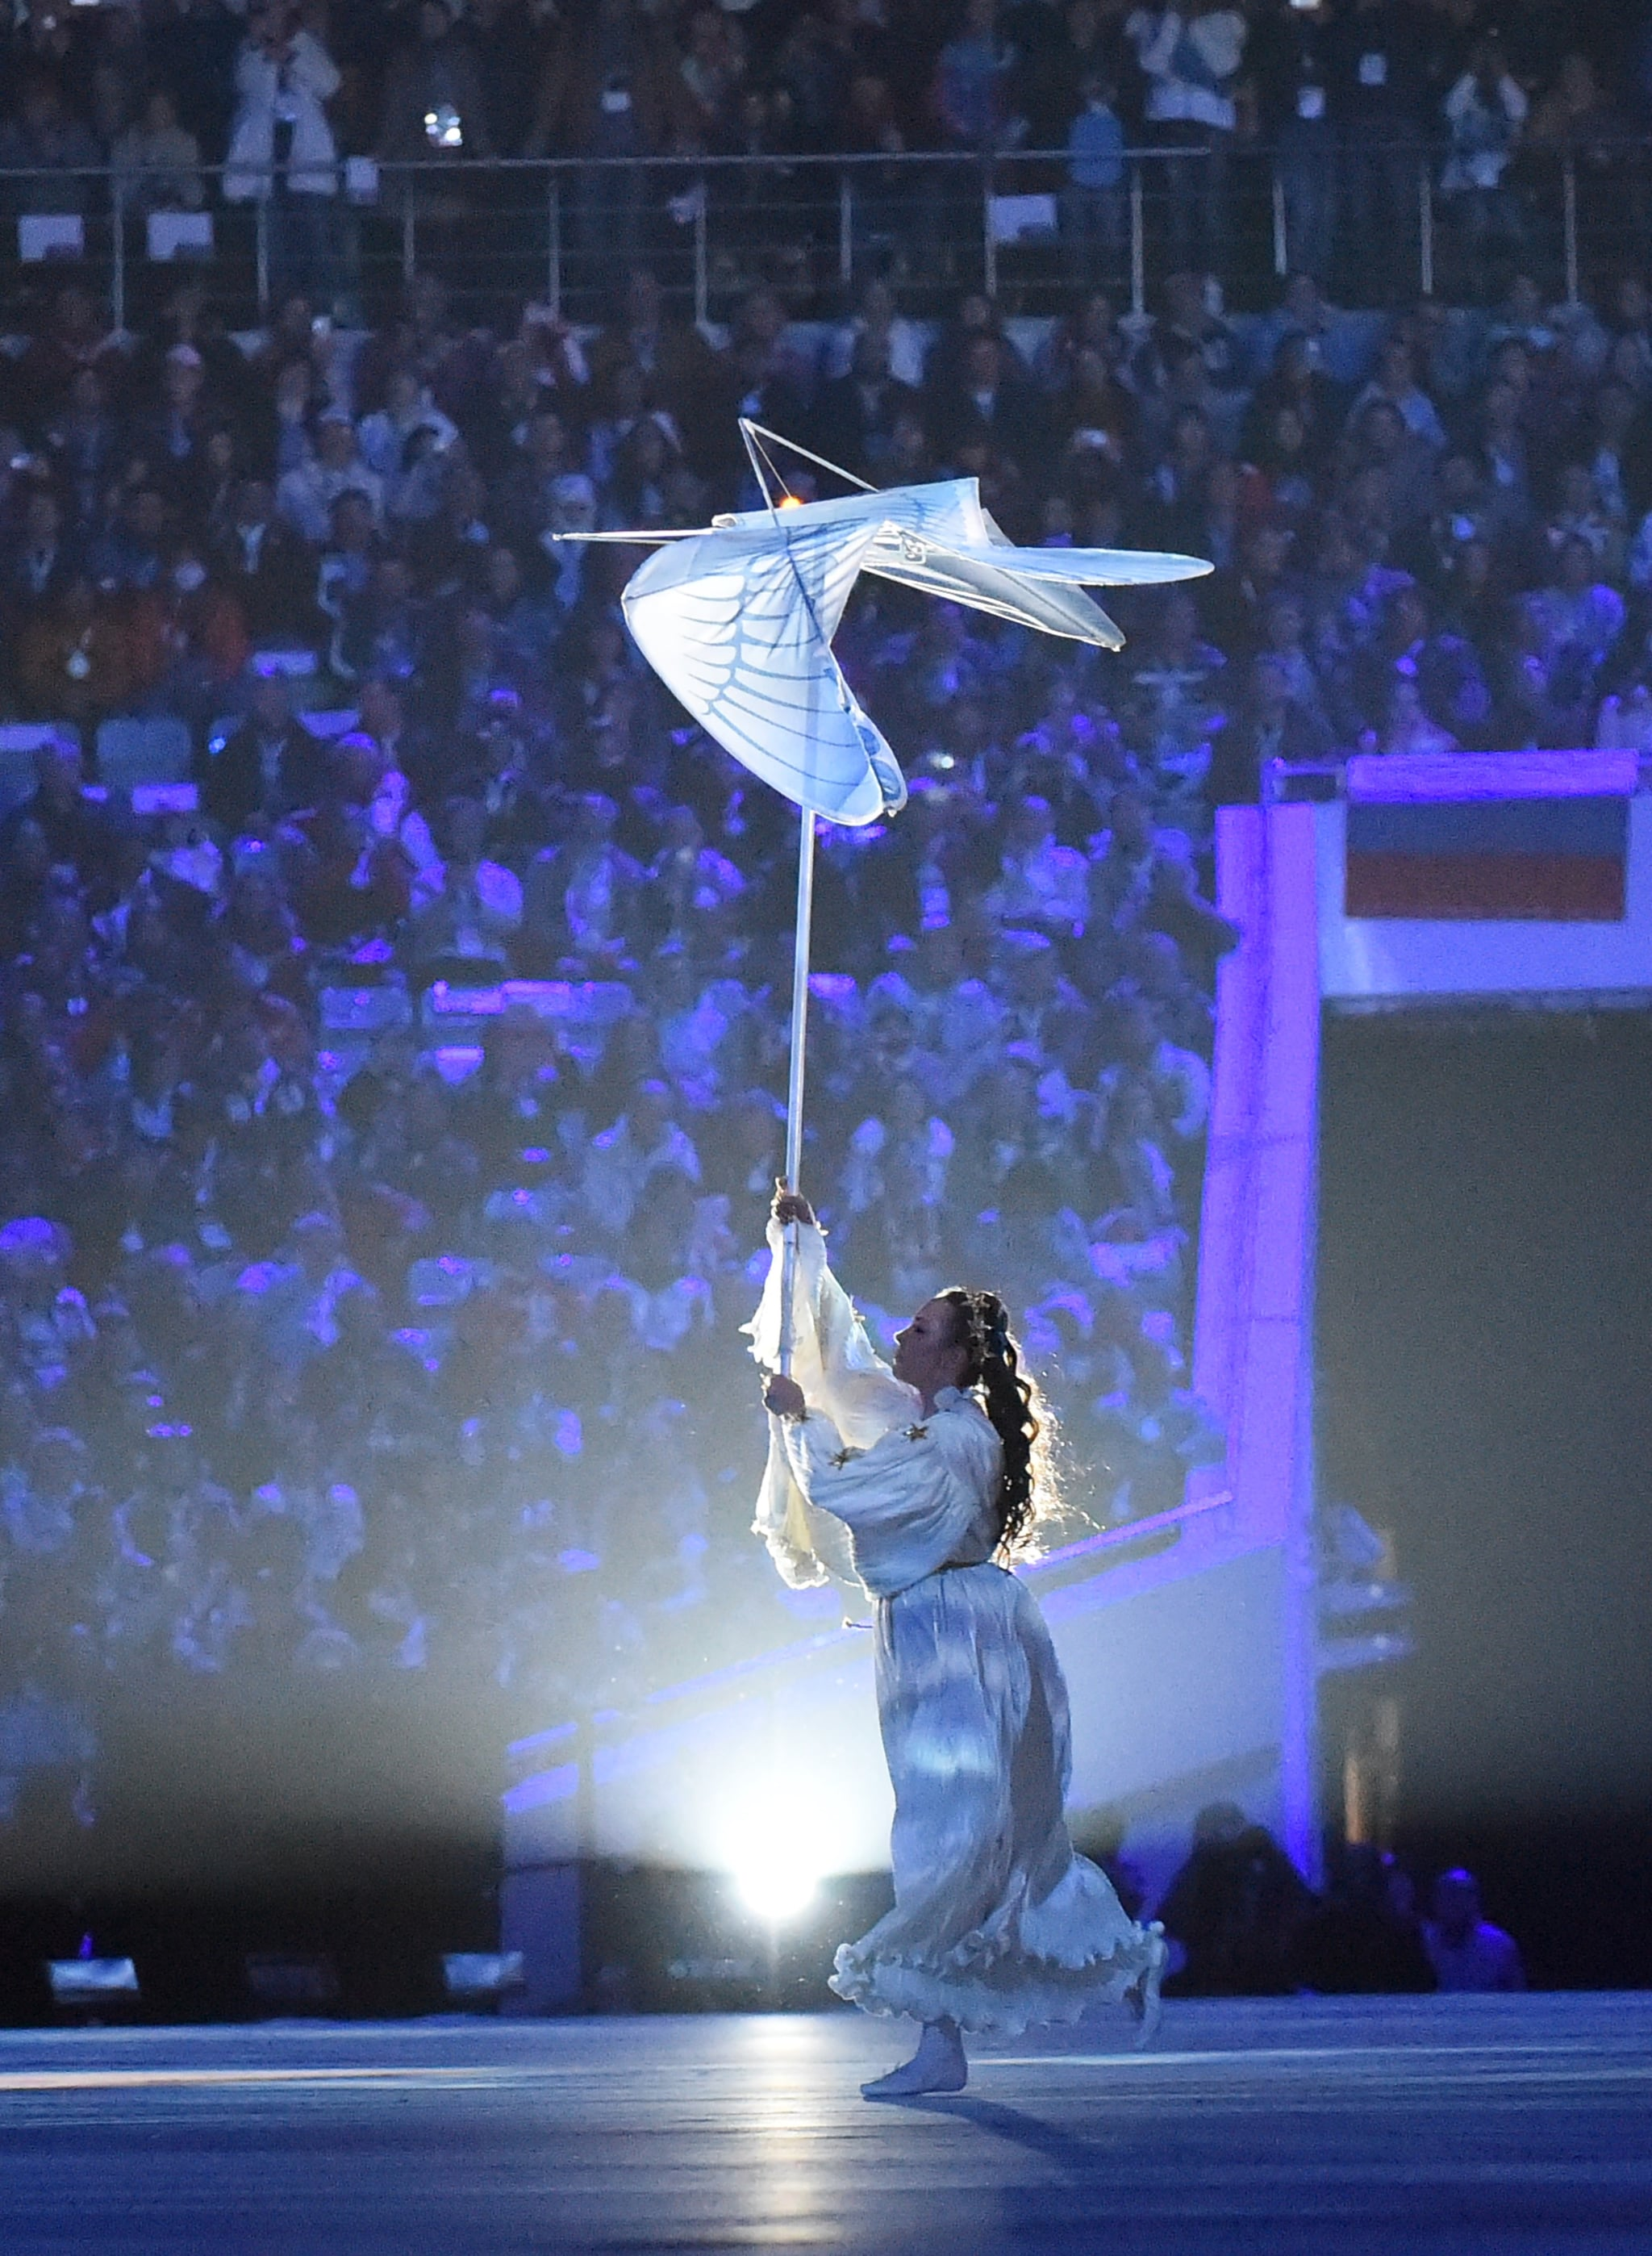 A dancer held up the white bird as she performed.